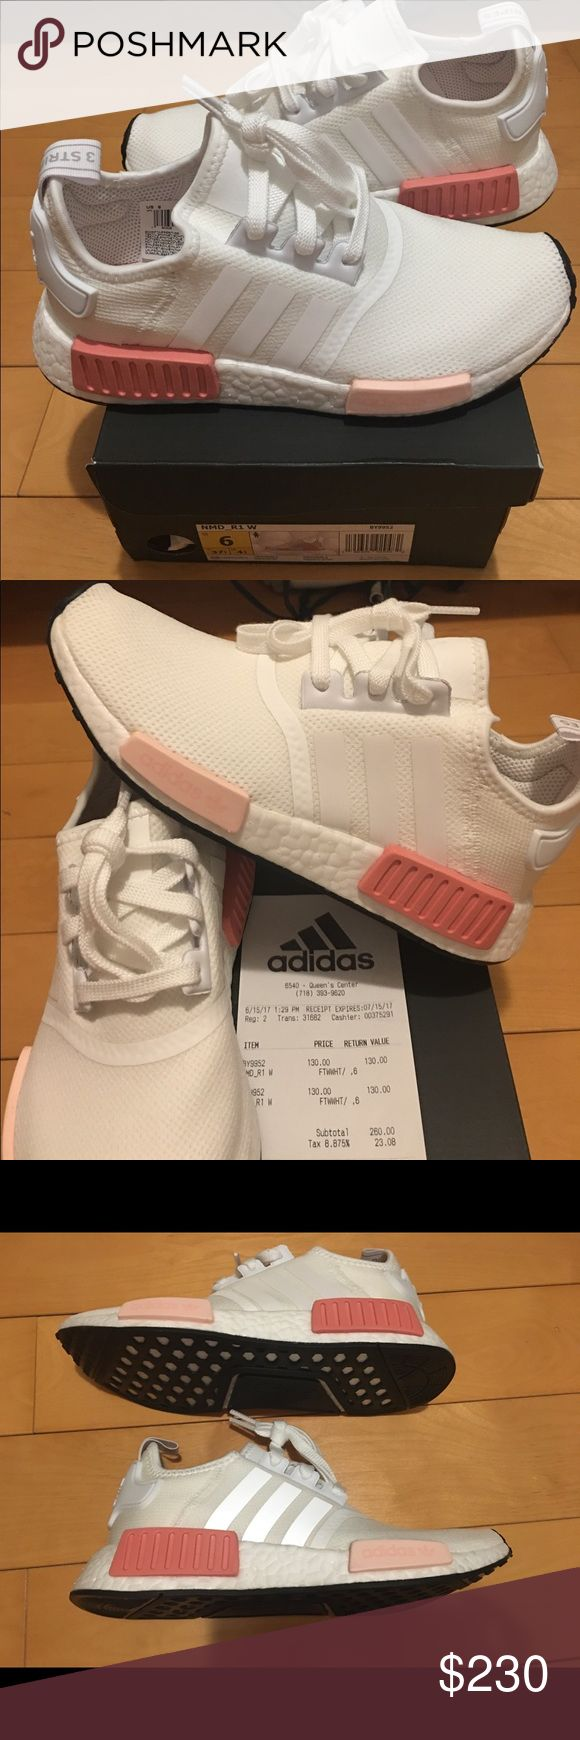 """Nmd R1 women size 6 """"ICY Rose """" New and authentic with original receipt. Size 6 in women .4 1/2 in Uk. White and pink colour .boost technology adidas Shoes Sneakers"""